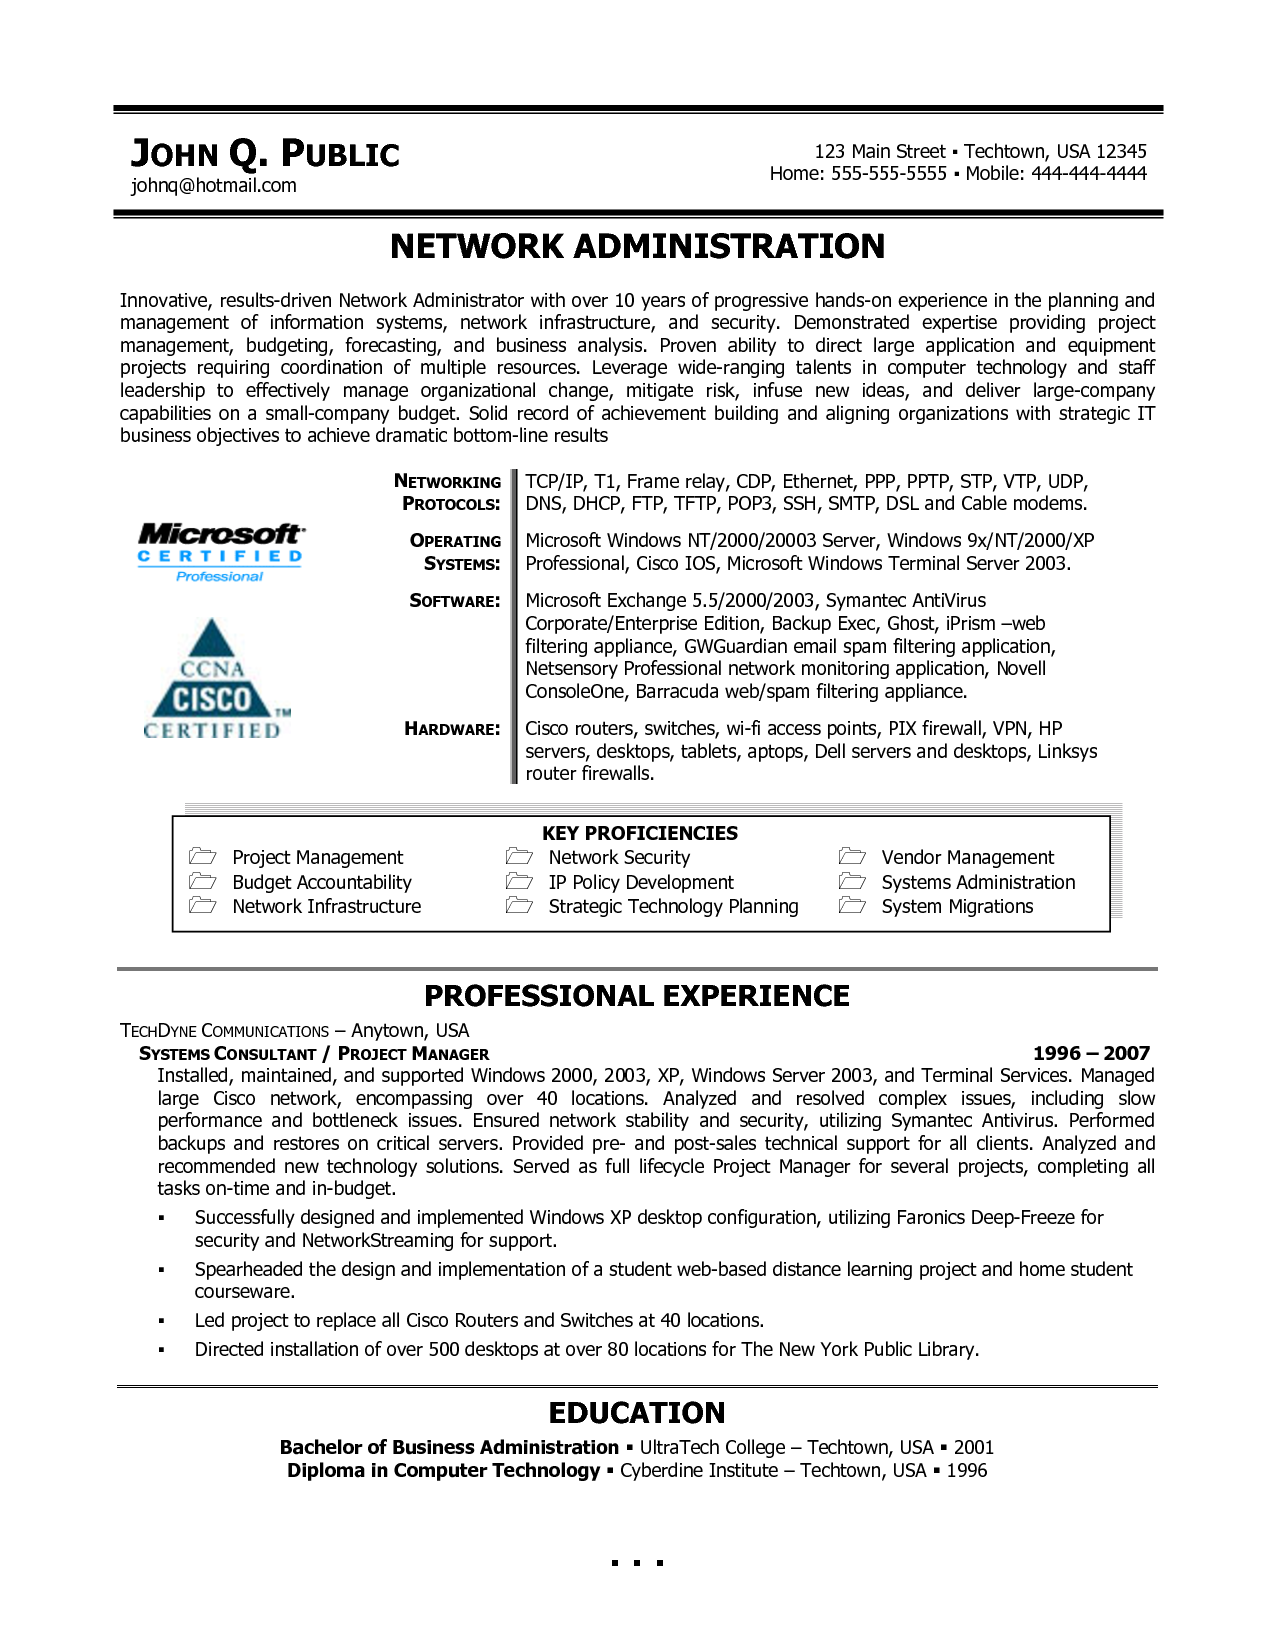 sle networking resume 28 images michael kyle format in college students cv template word english free download general career objective sample